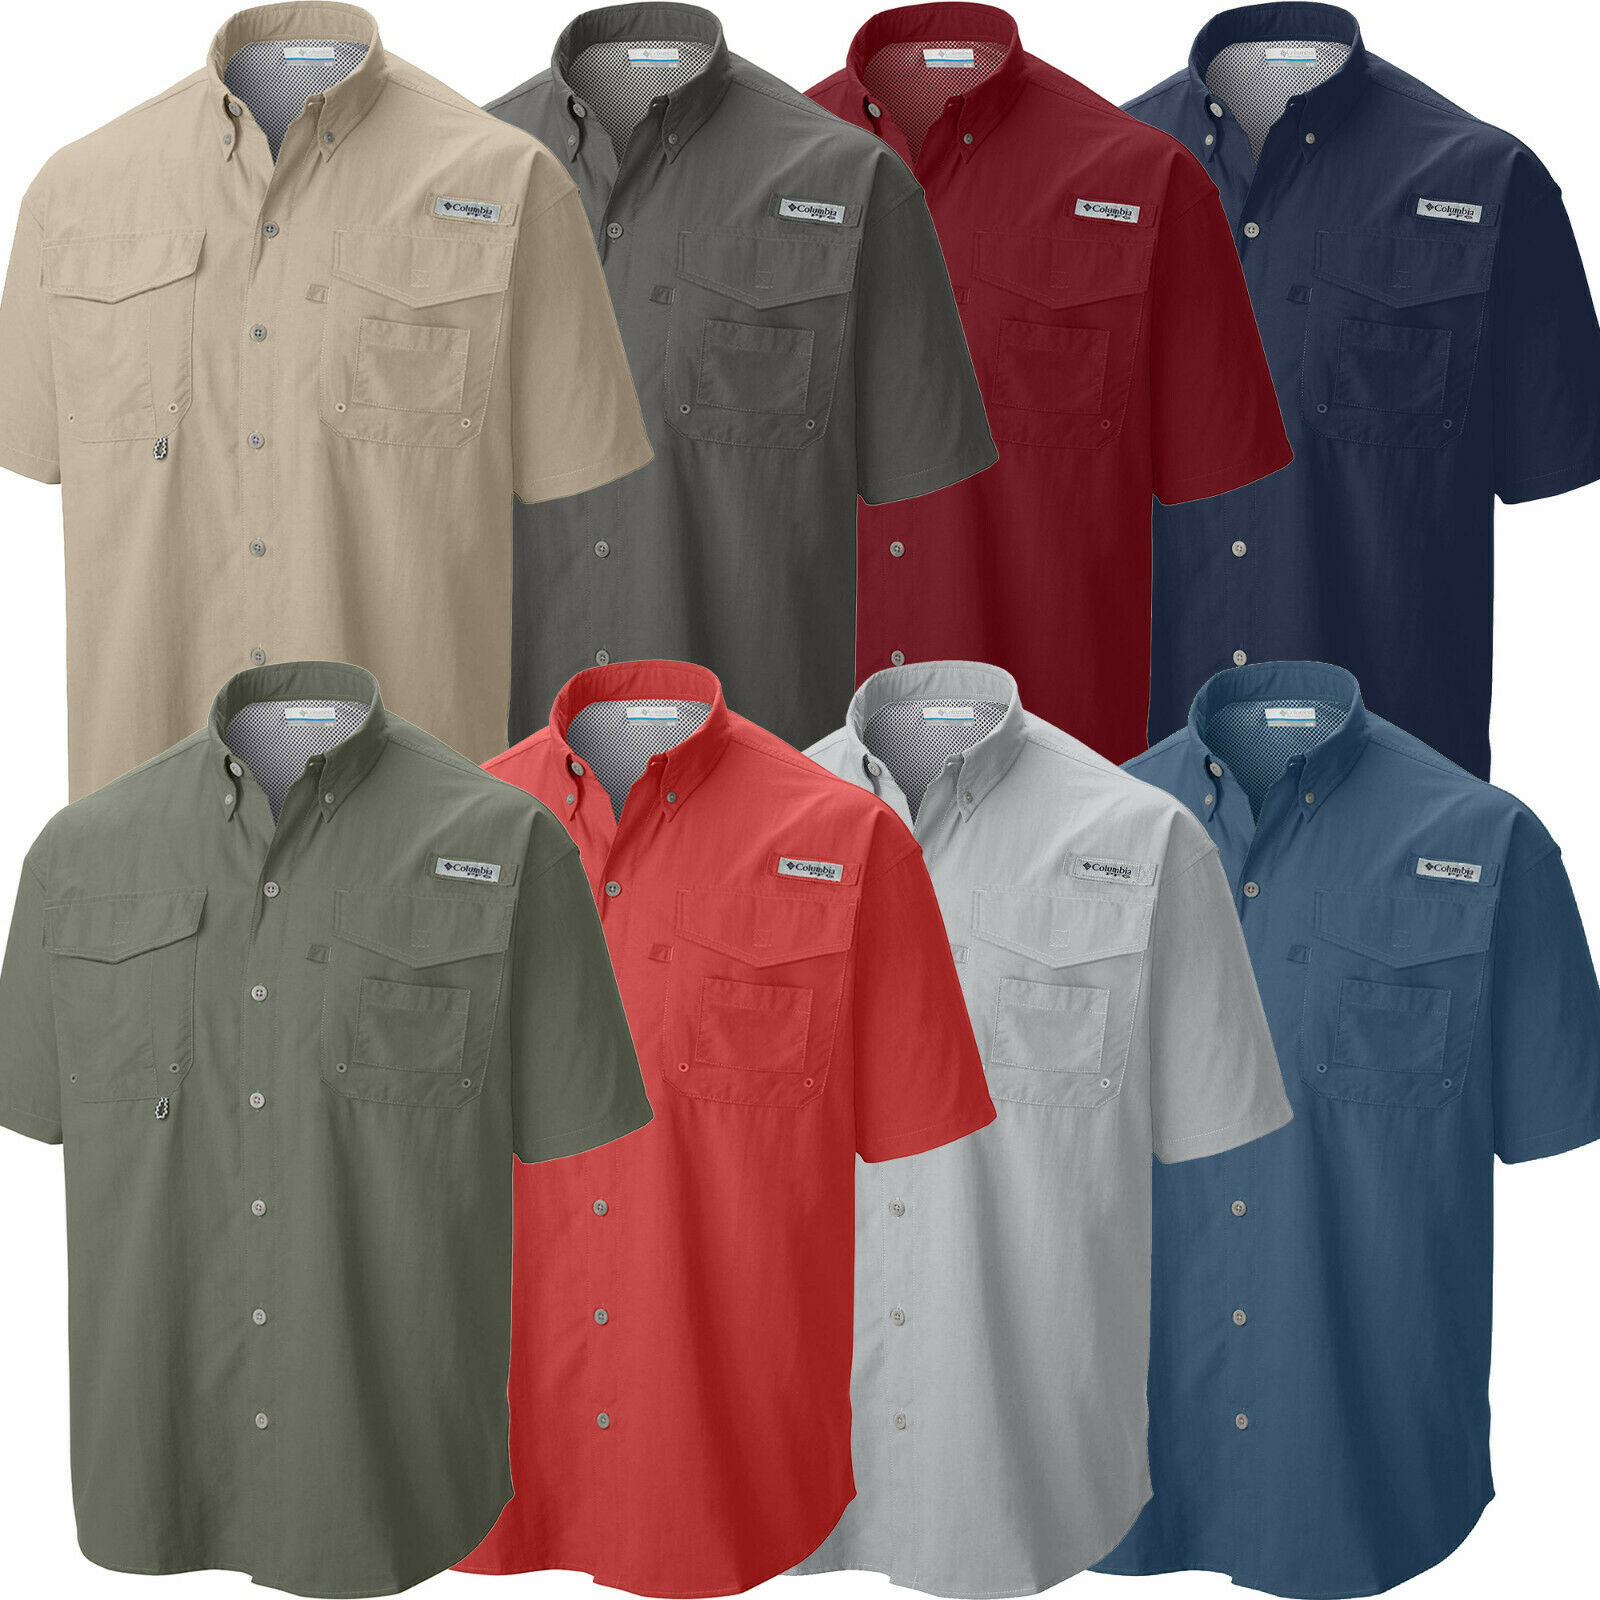 New Mens Casual Shirts Short Sleeve Plain Basic Slim Fit Shirt Top S M L XL PS04